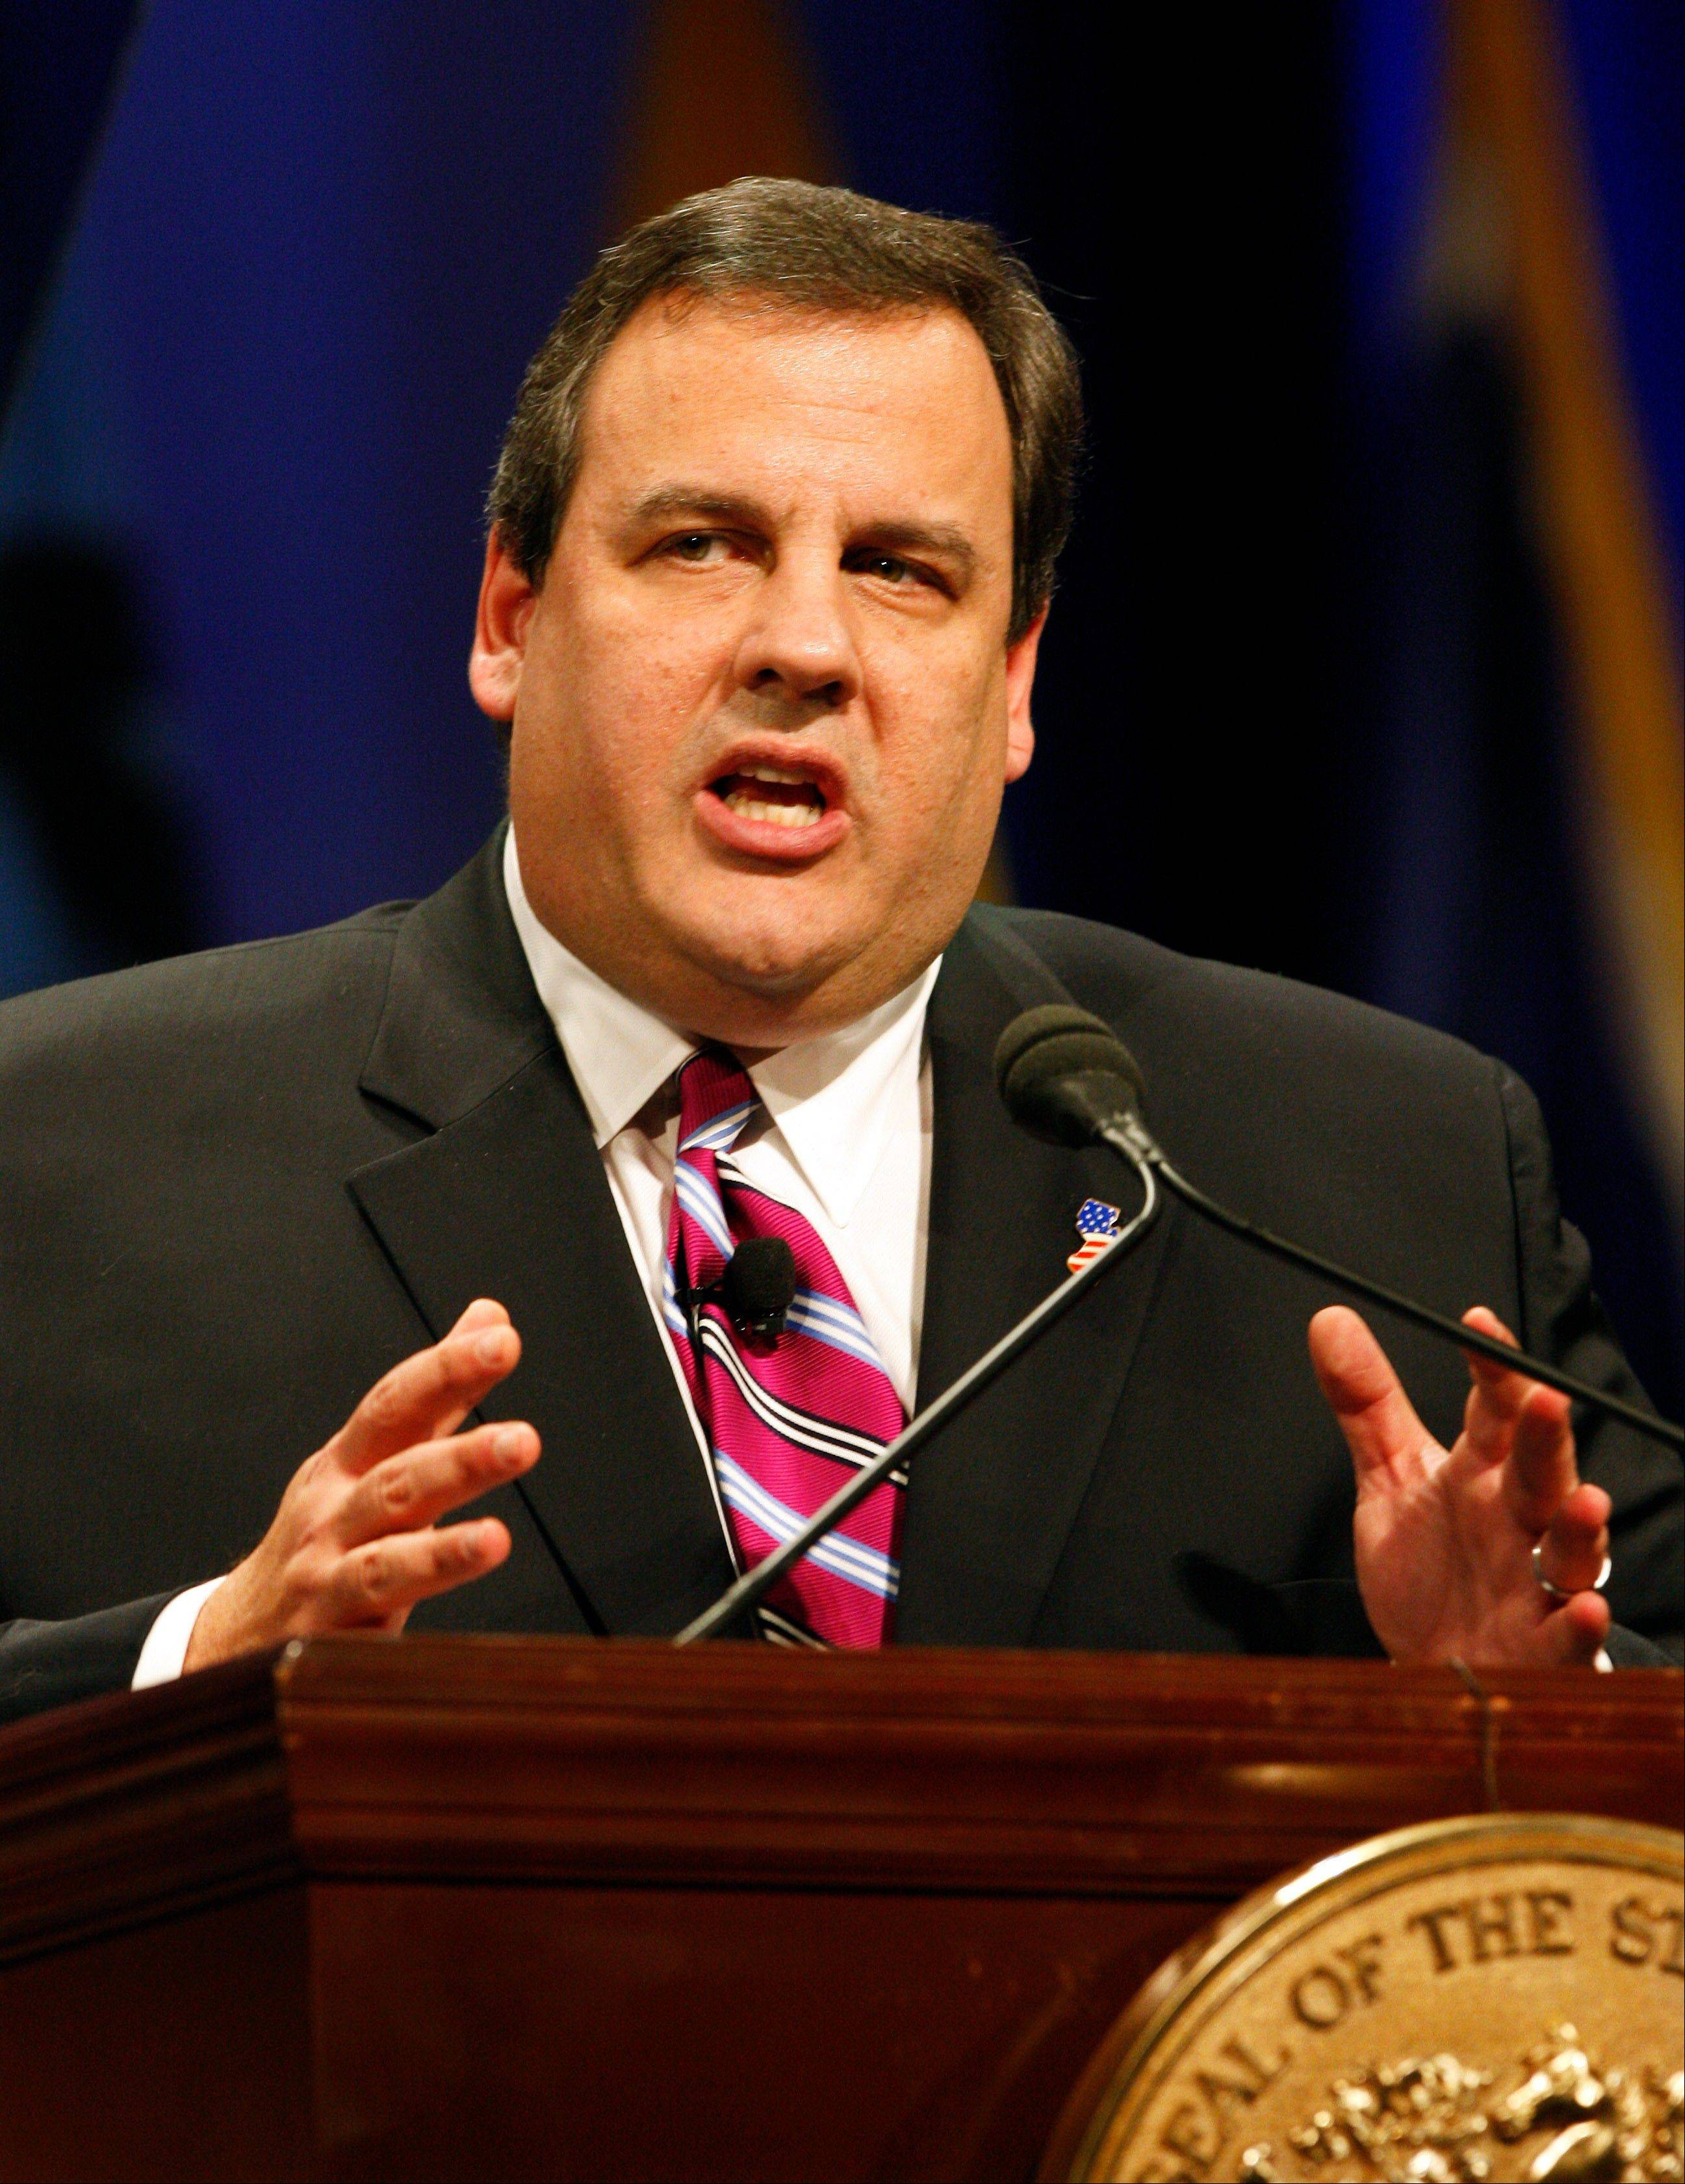 New Jersey Gov. Chris Christie speaking during his inauguration ceremony in 2010.